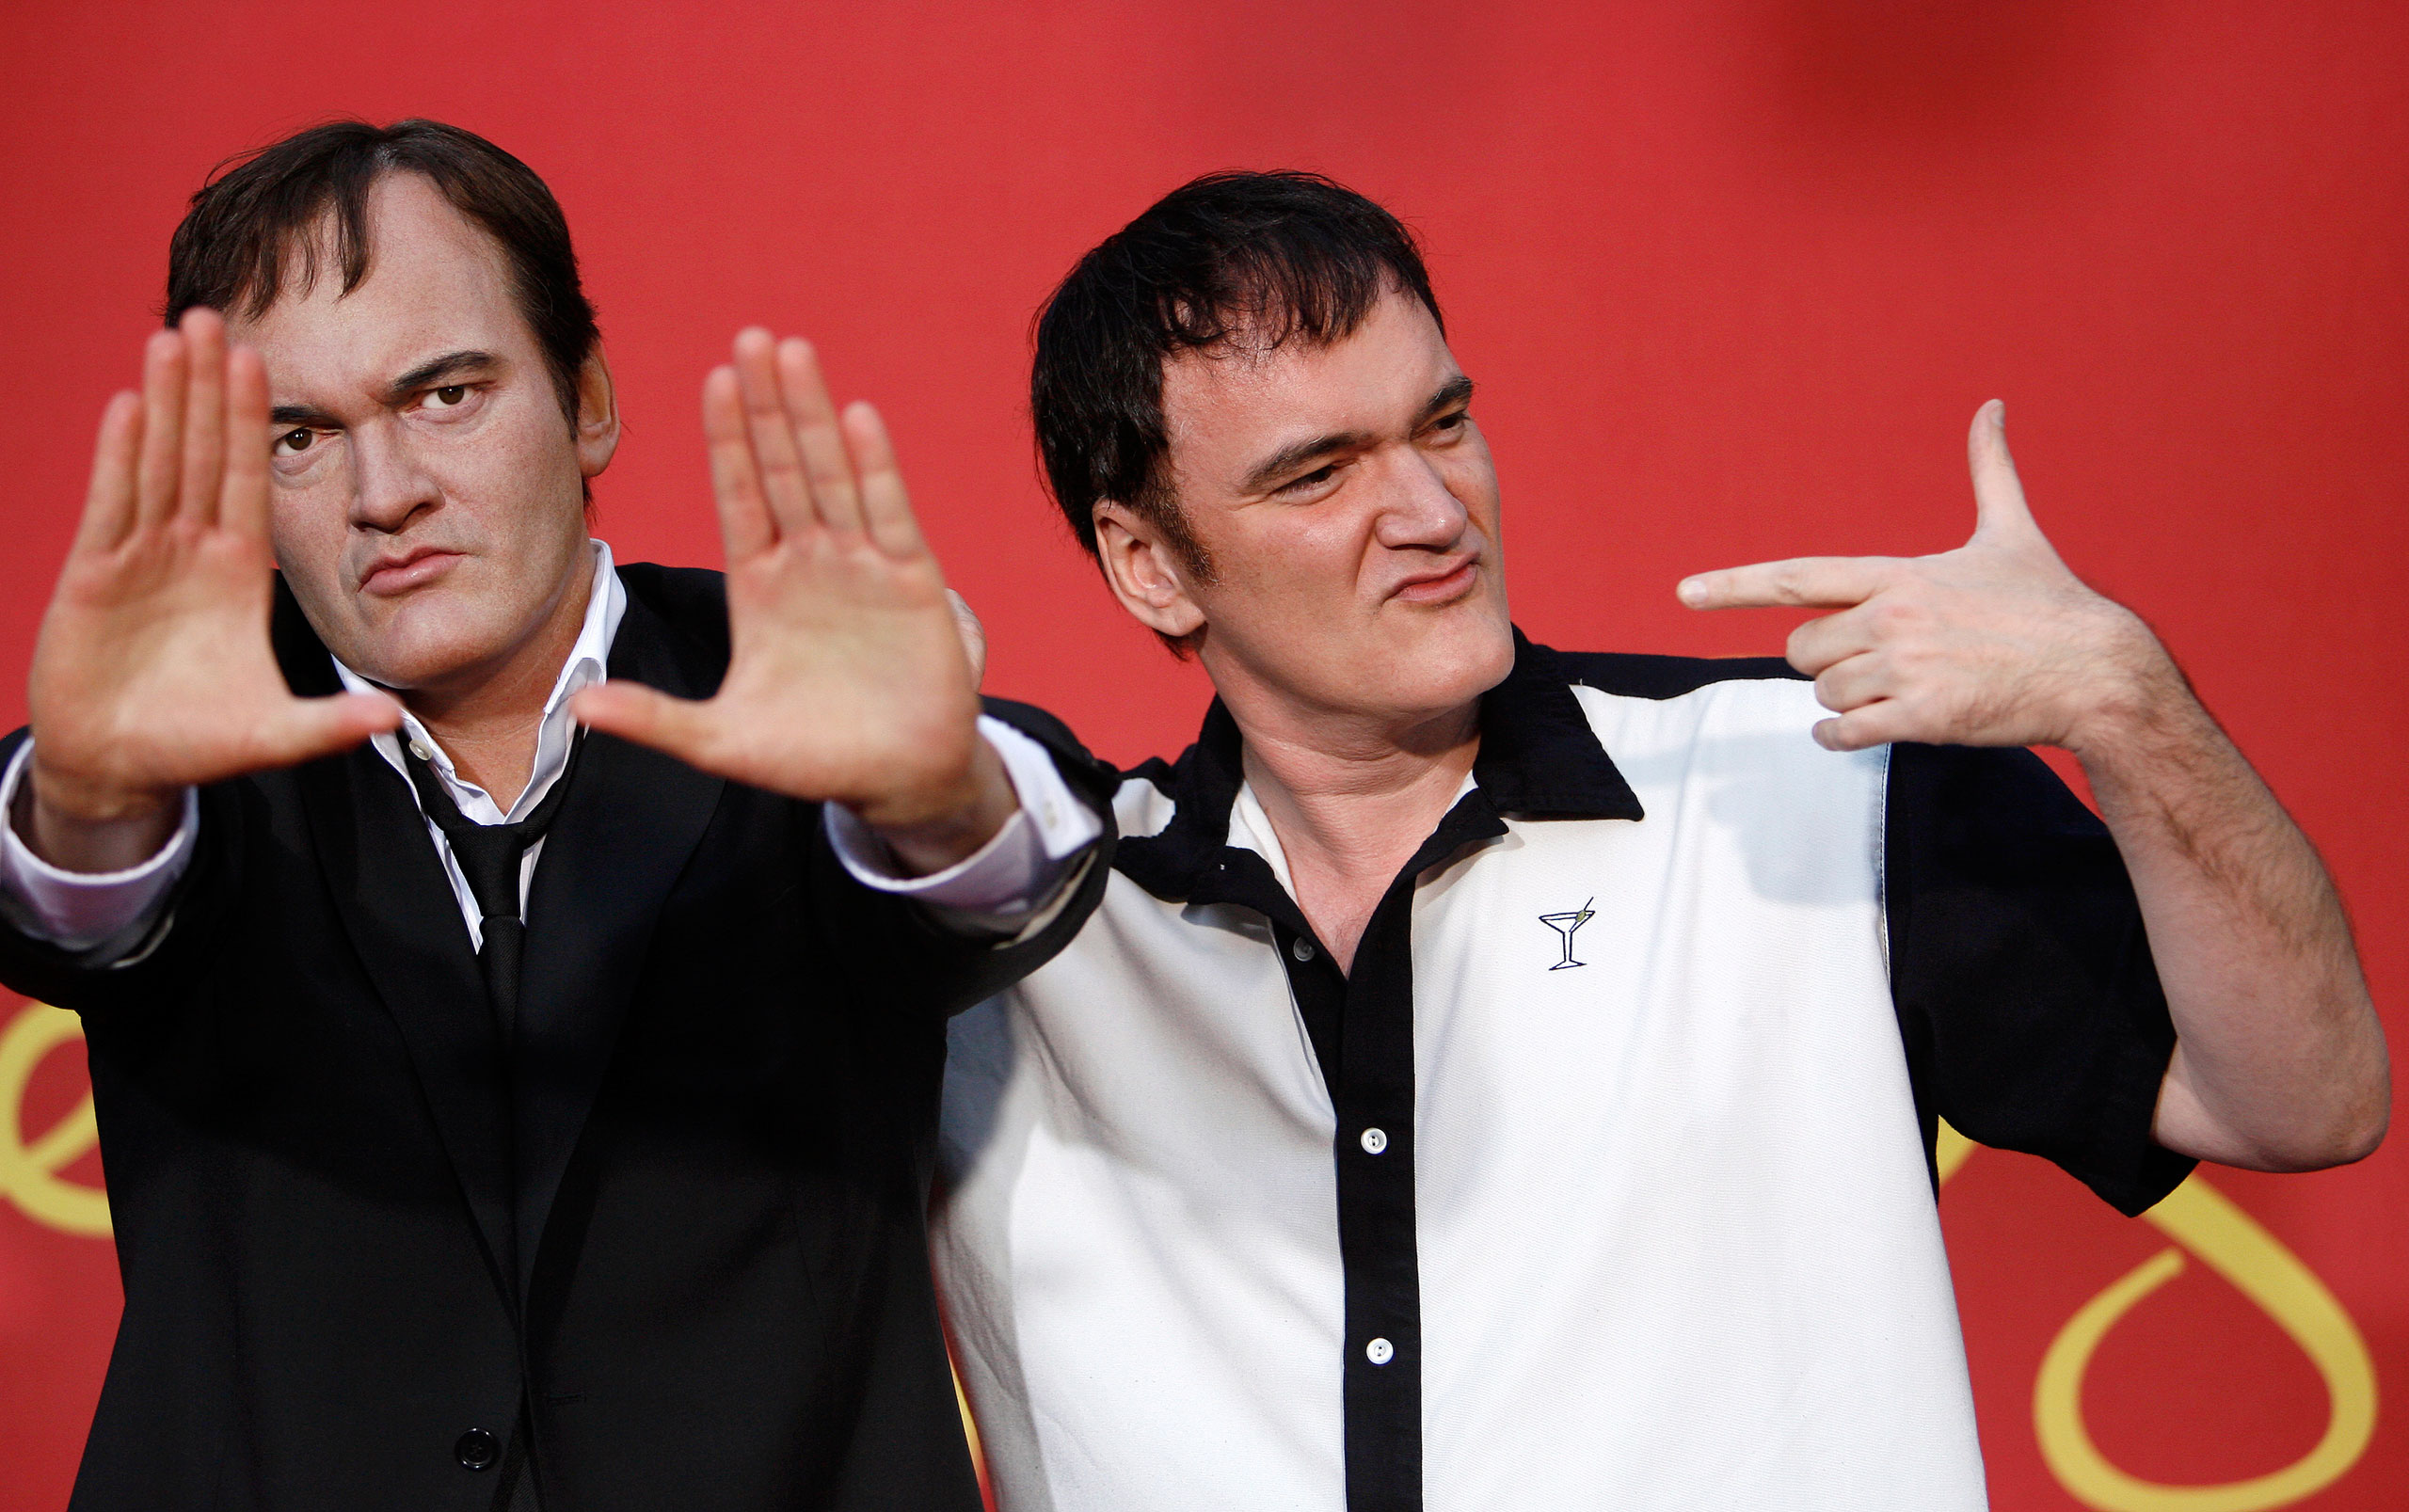 Quentin Tarantino, right, poses next to his wax figure after it was unveiled at Madame Tussauds in Hollywood on Aug. 7, 2009.